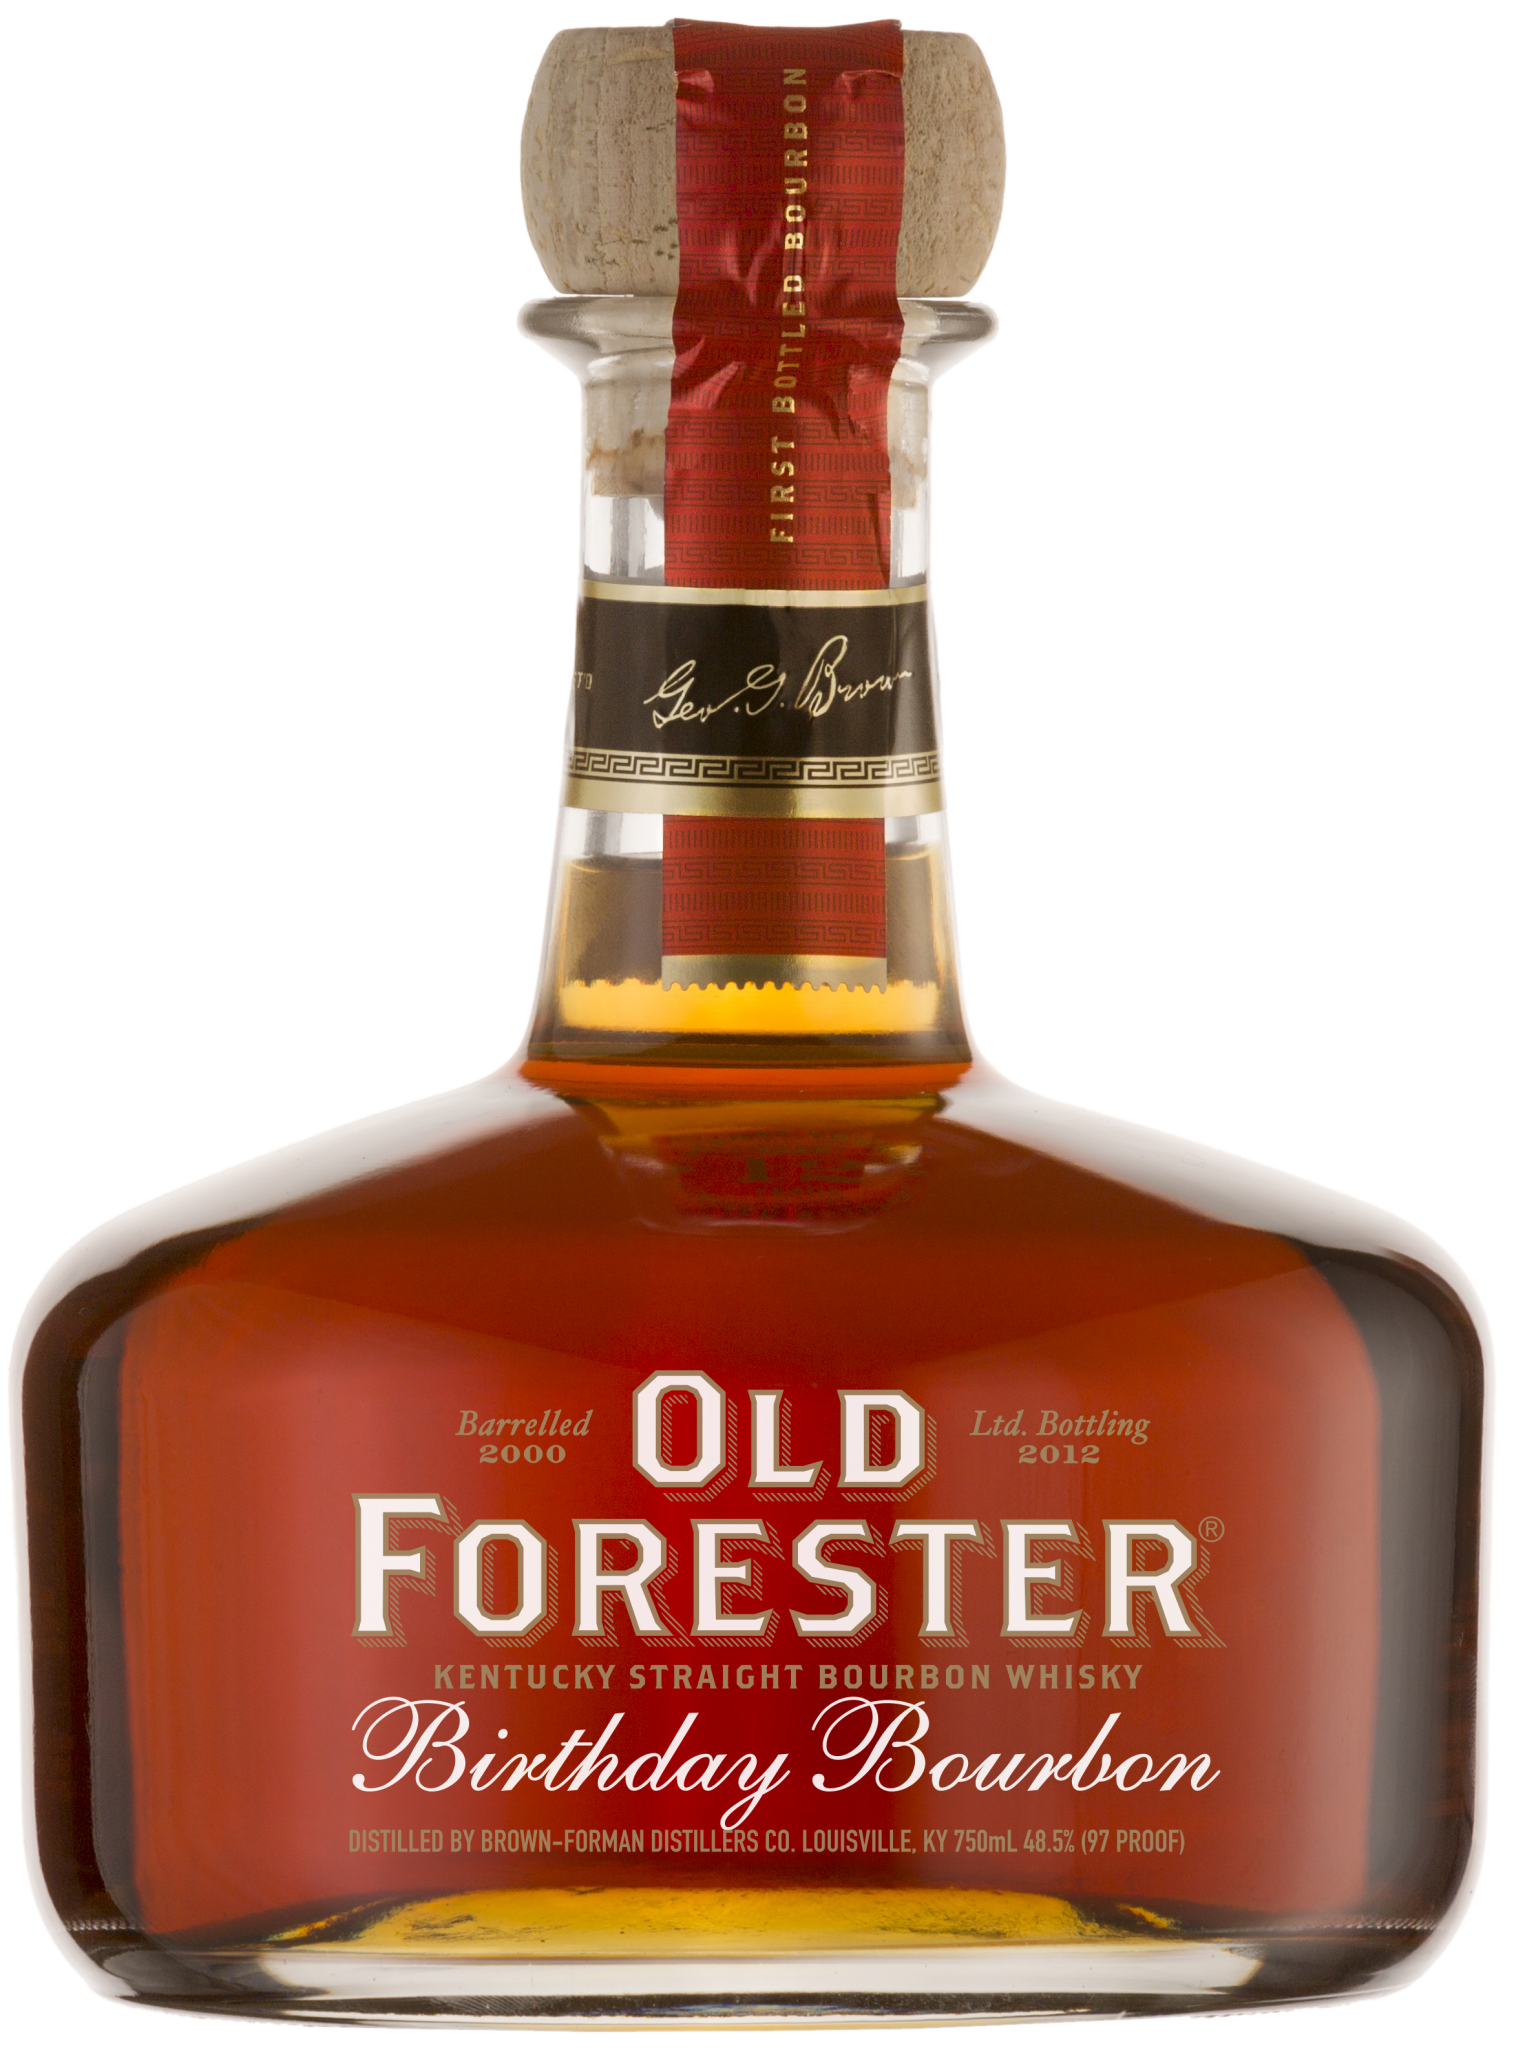 Old Forester Birthday 12 years aged 2012 bottling